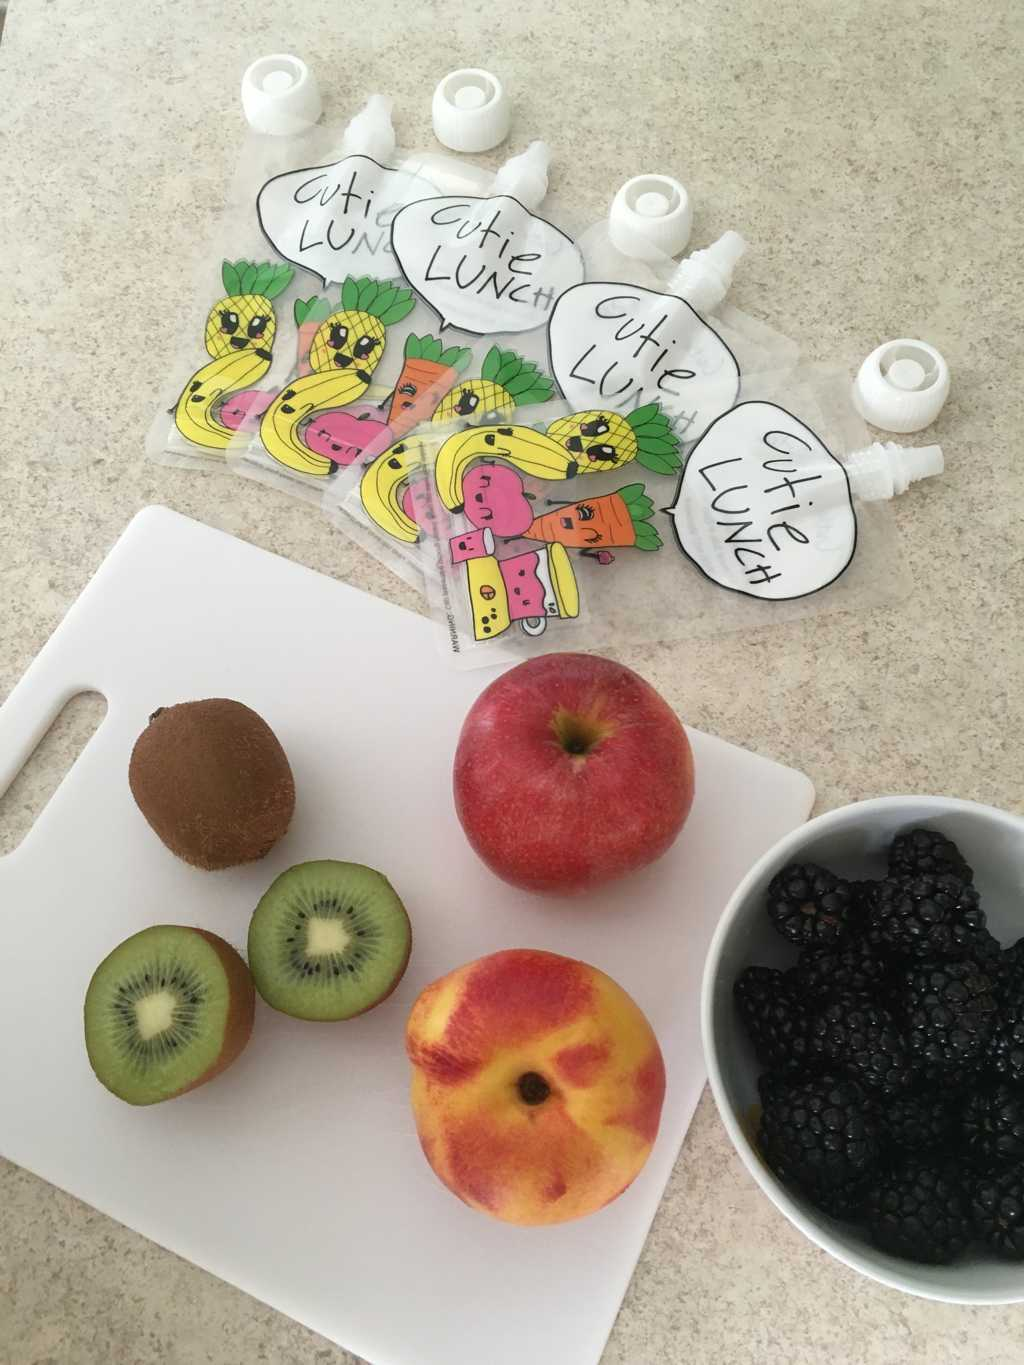 Homemade Baby Food Storage Made Easy With Cutielunch